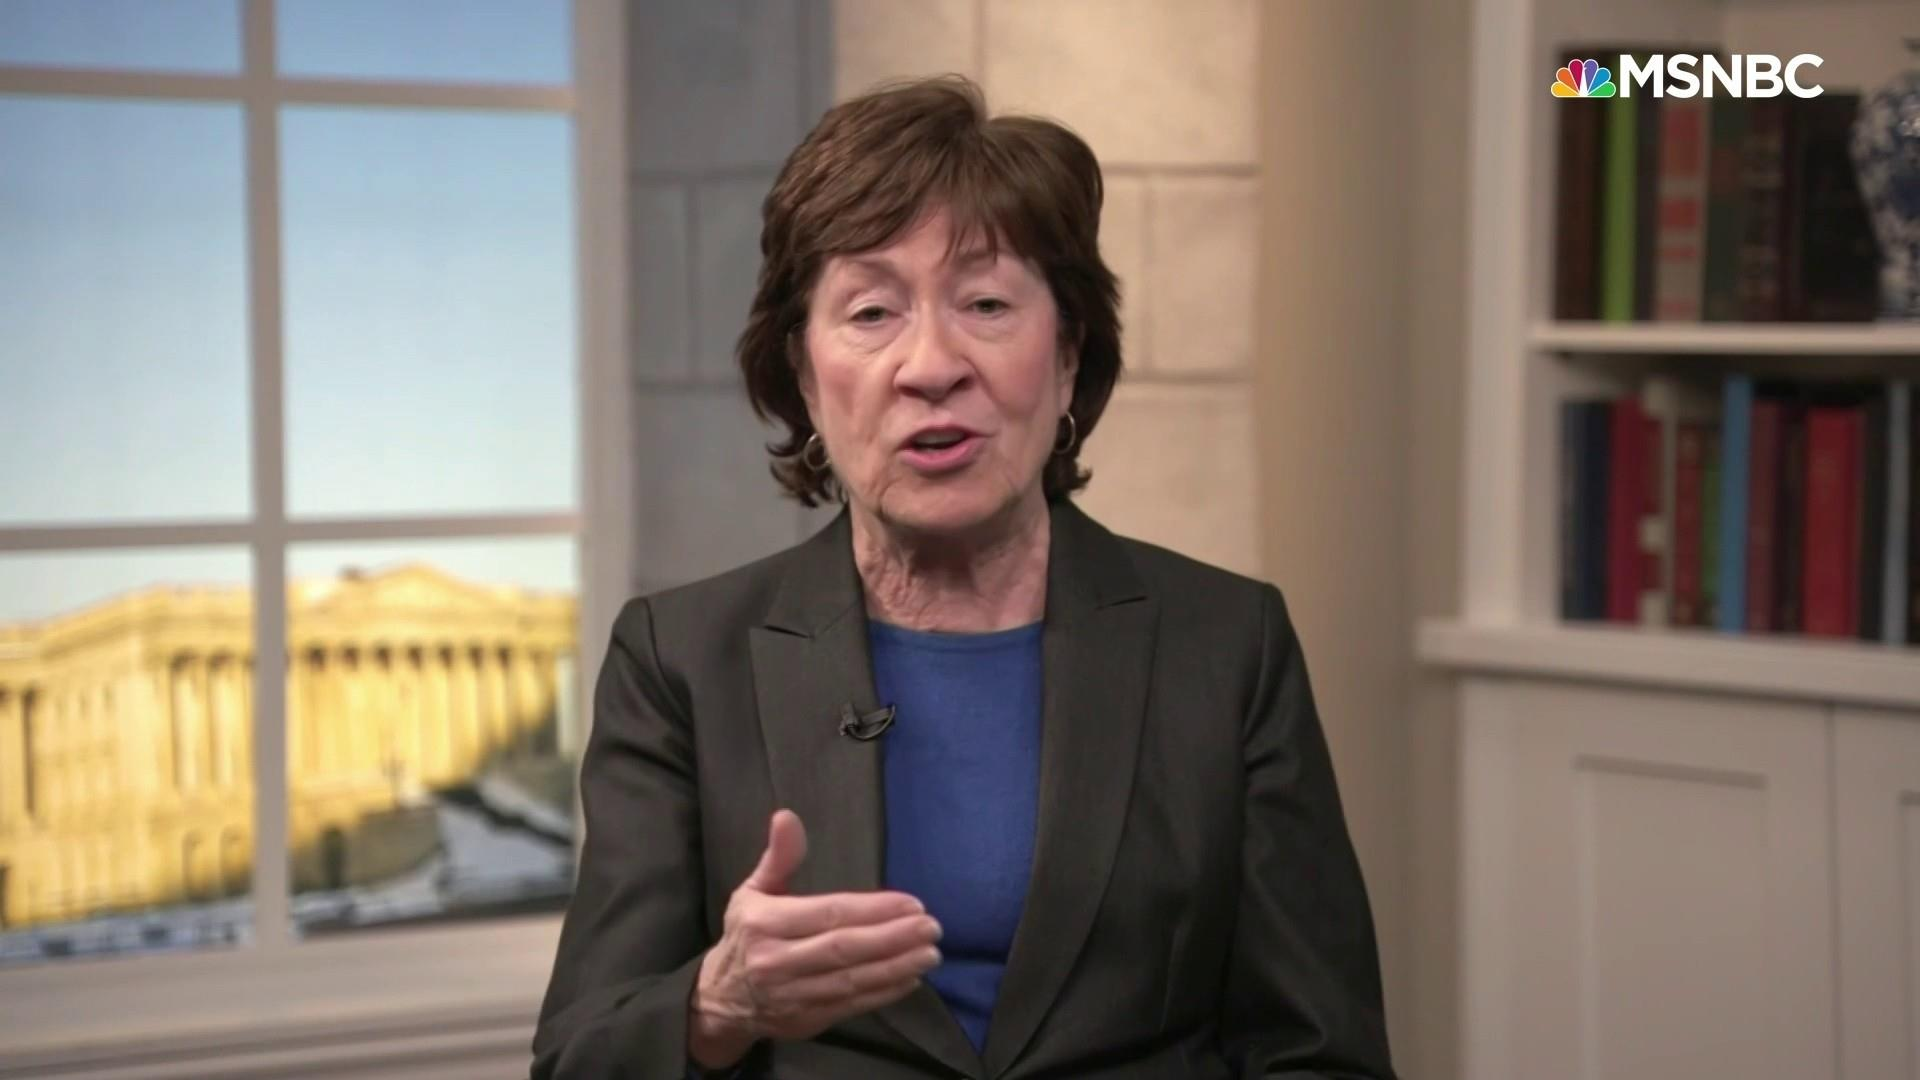 Sen. Collins: 'I'm very likely to vote for additional information' in impeachment trial